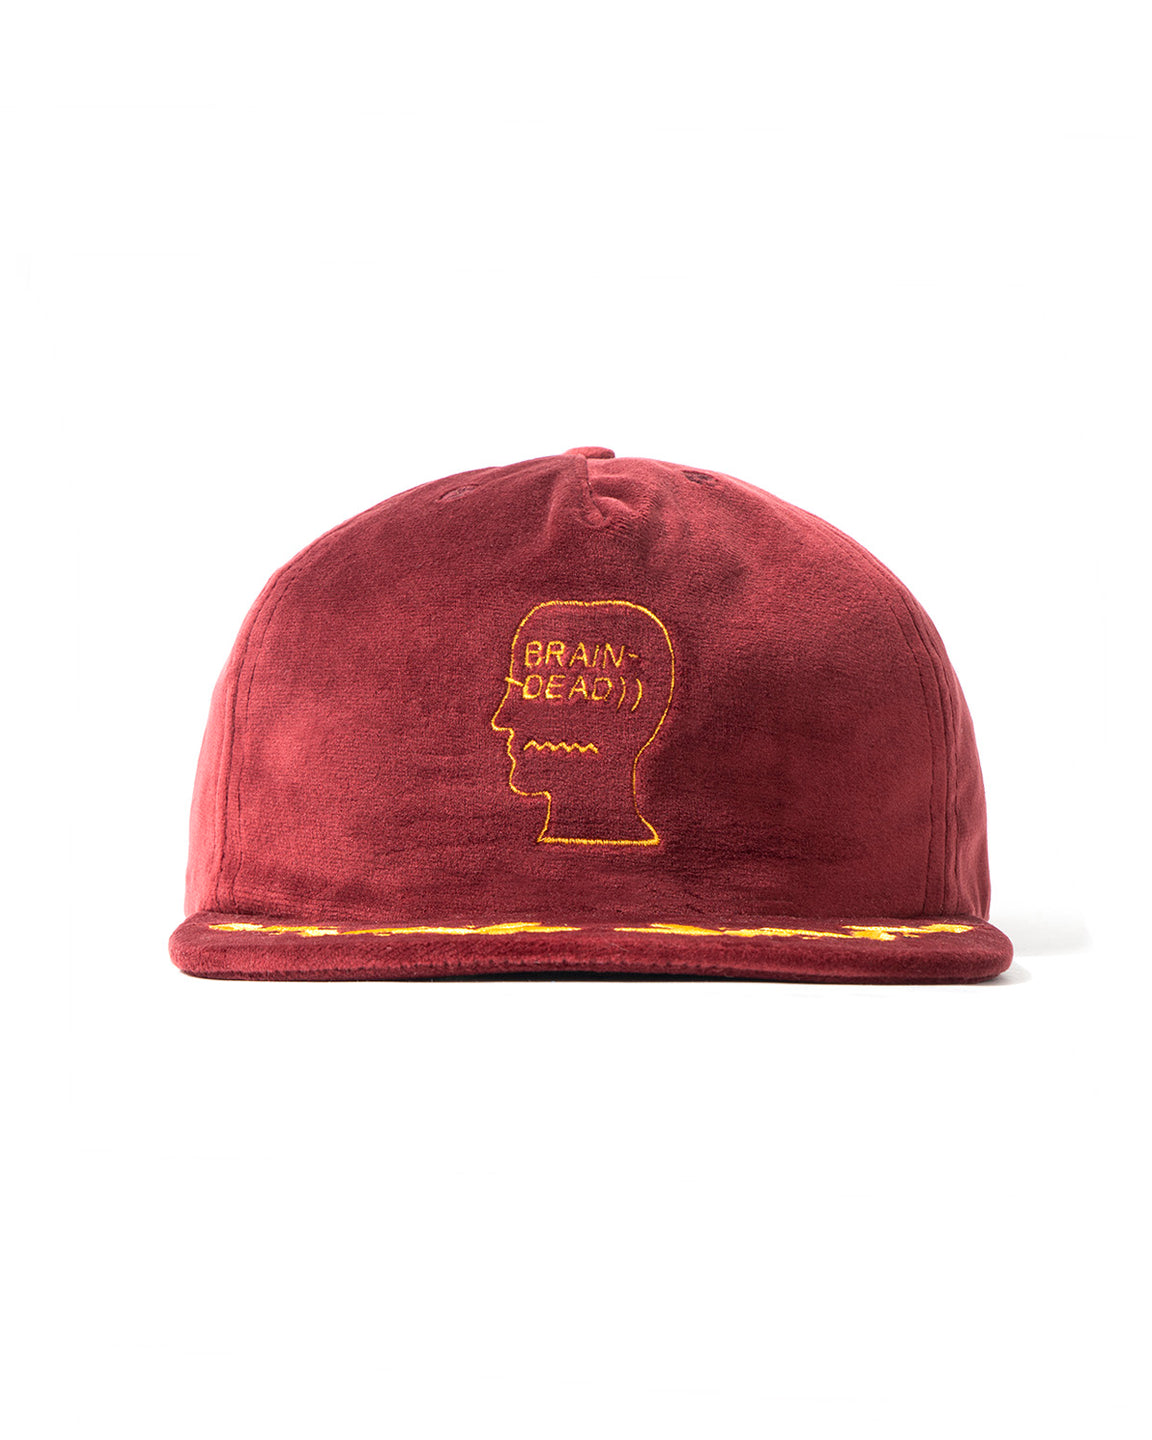 Scrambled Egg Hat - Burgundy